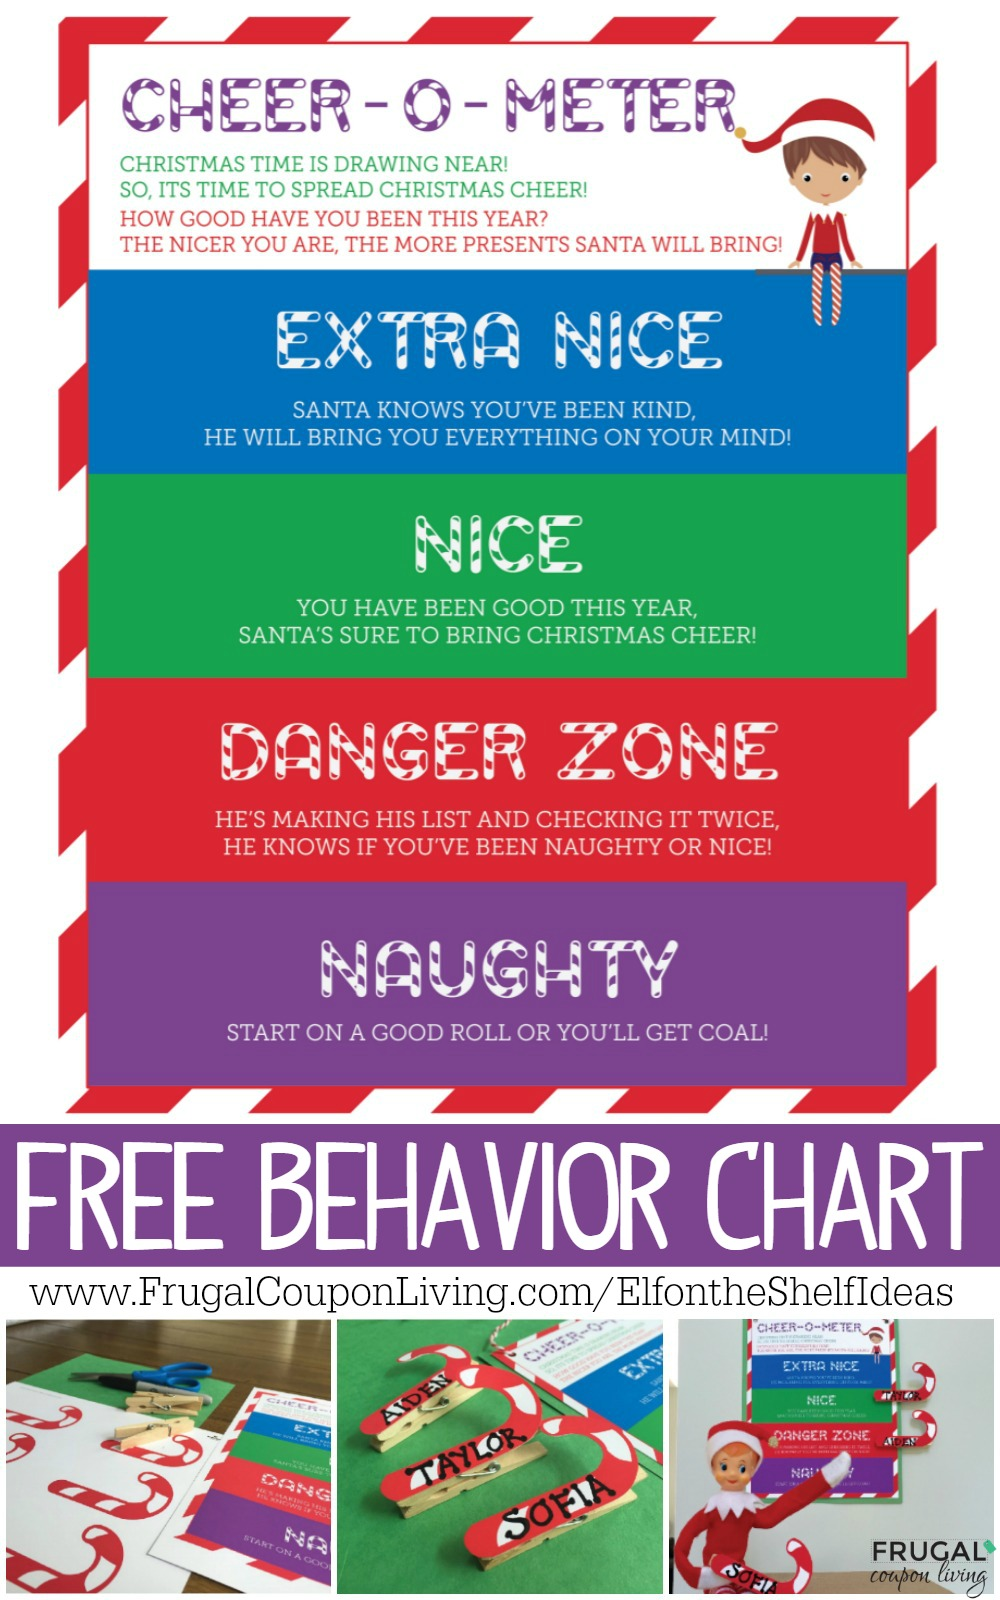 elf-on-the-shelf-behavior-chart-printable-frugal-coupon-living-short